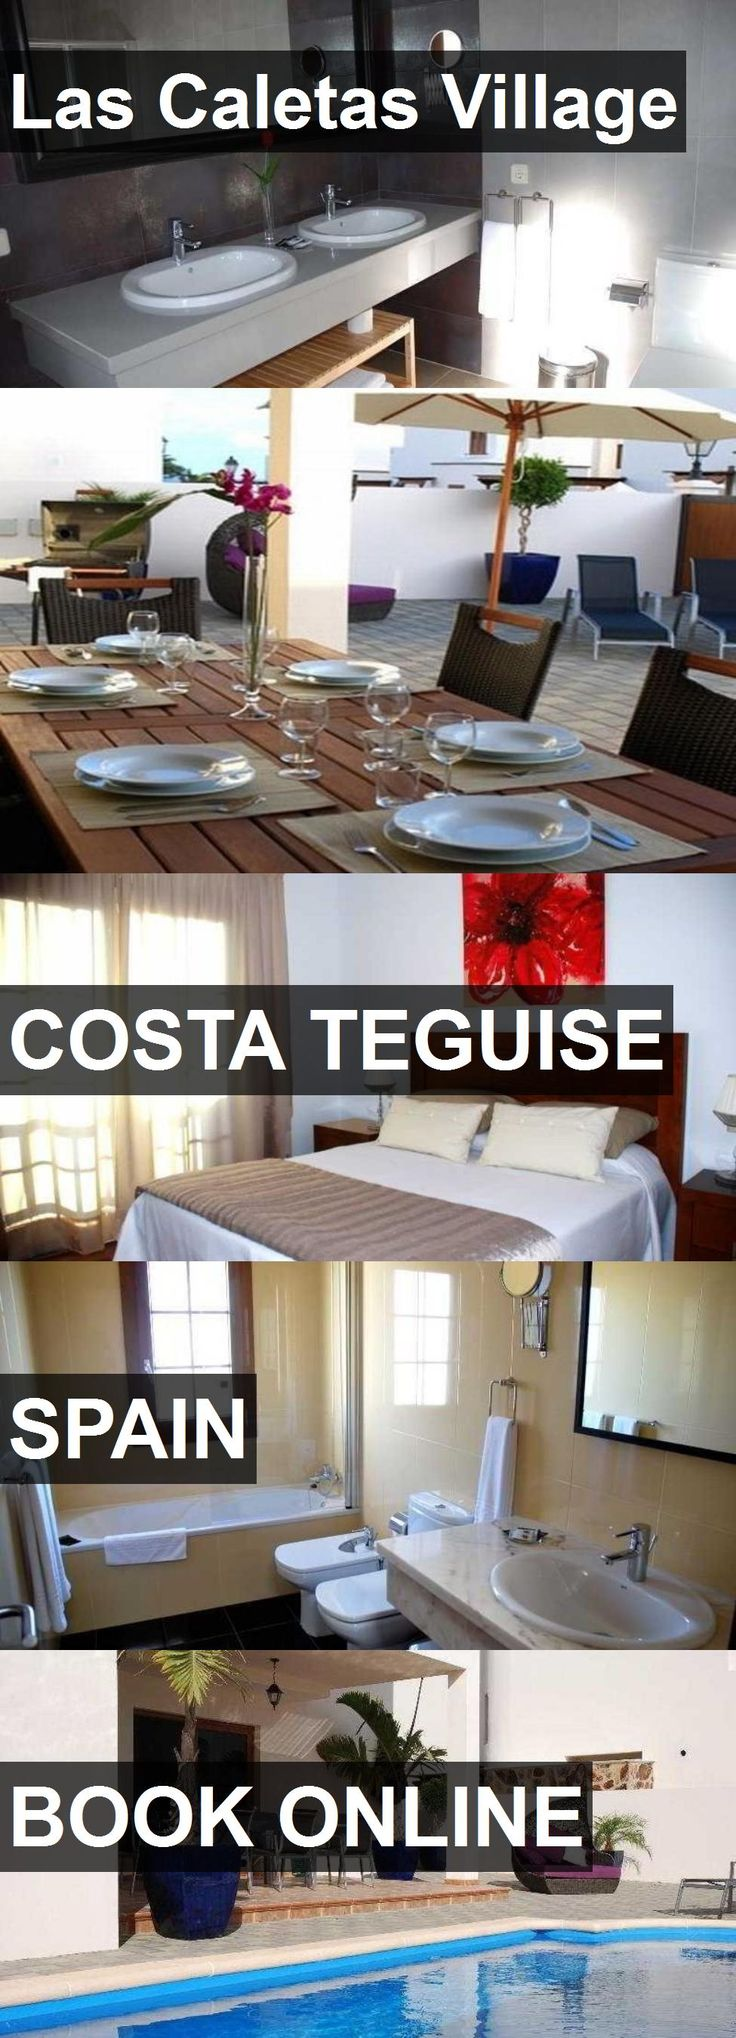 Hotel Las Caletas Village in Costa Teguise, Spain. For more information, photos, reviews and best prices please follow the link. #Spain #CostaTeguise #travel #vacation #hotel